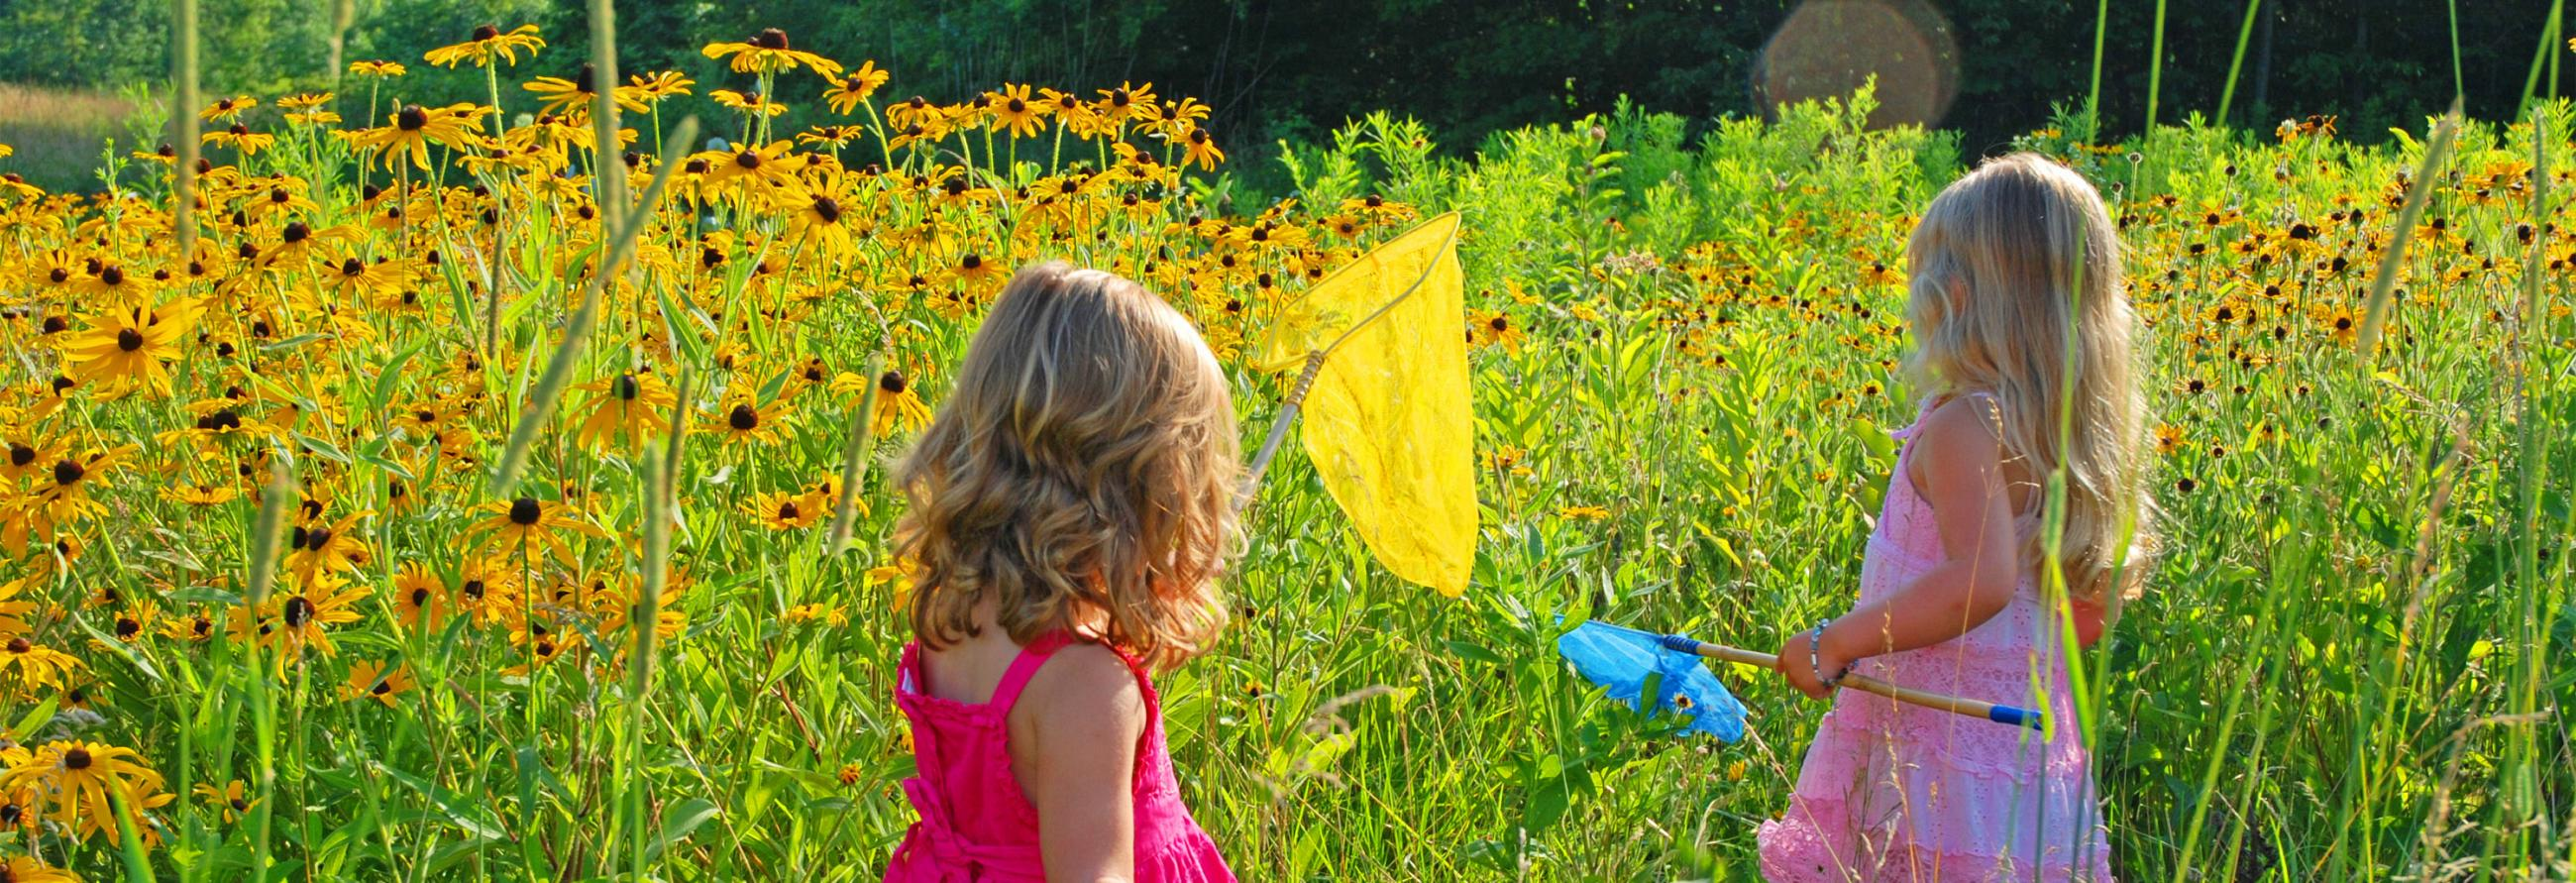 Girls in flower field with butterfly nets and their lightweight travel trailer